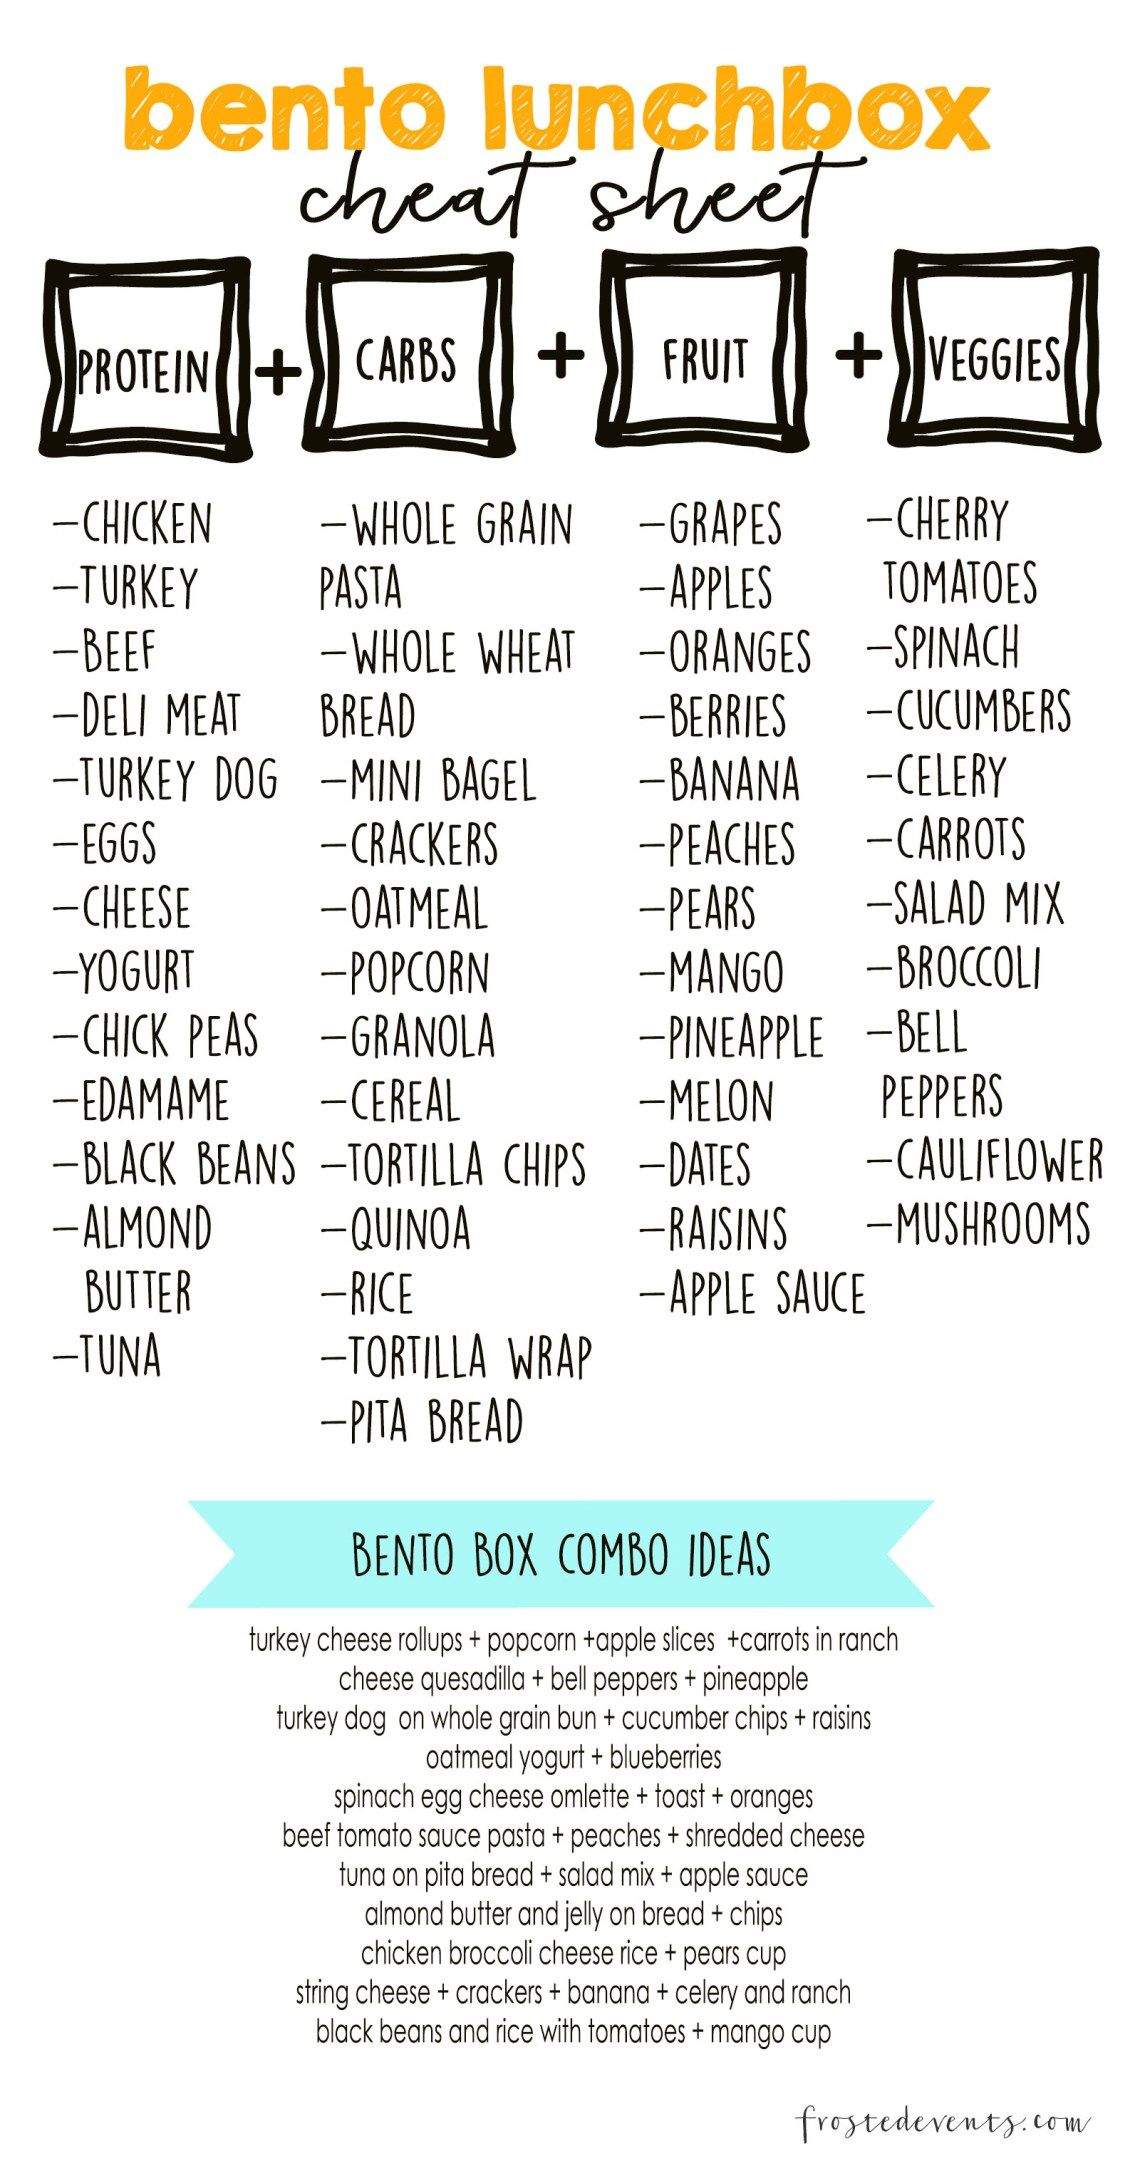 Bento Box Lunch Ideas Cheat Sheet With Images